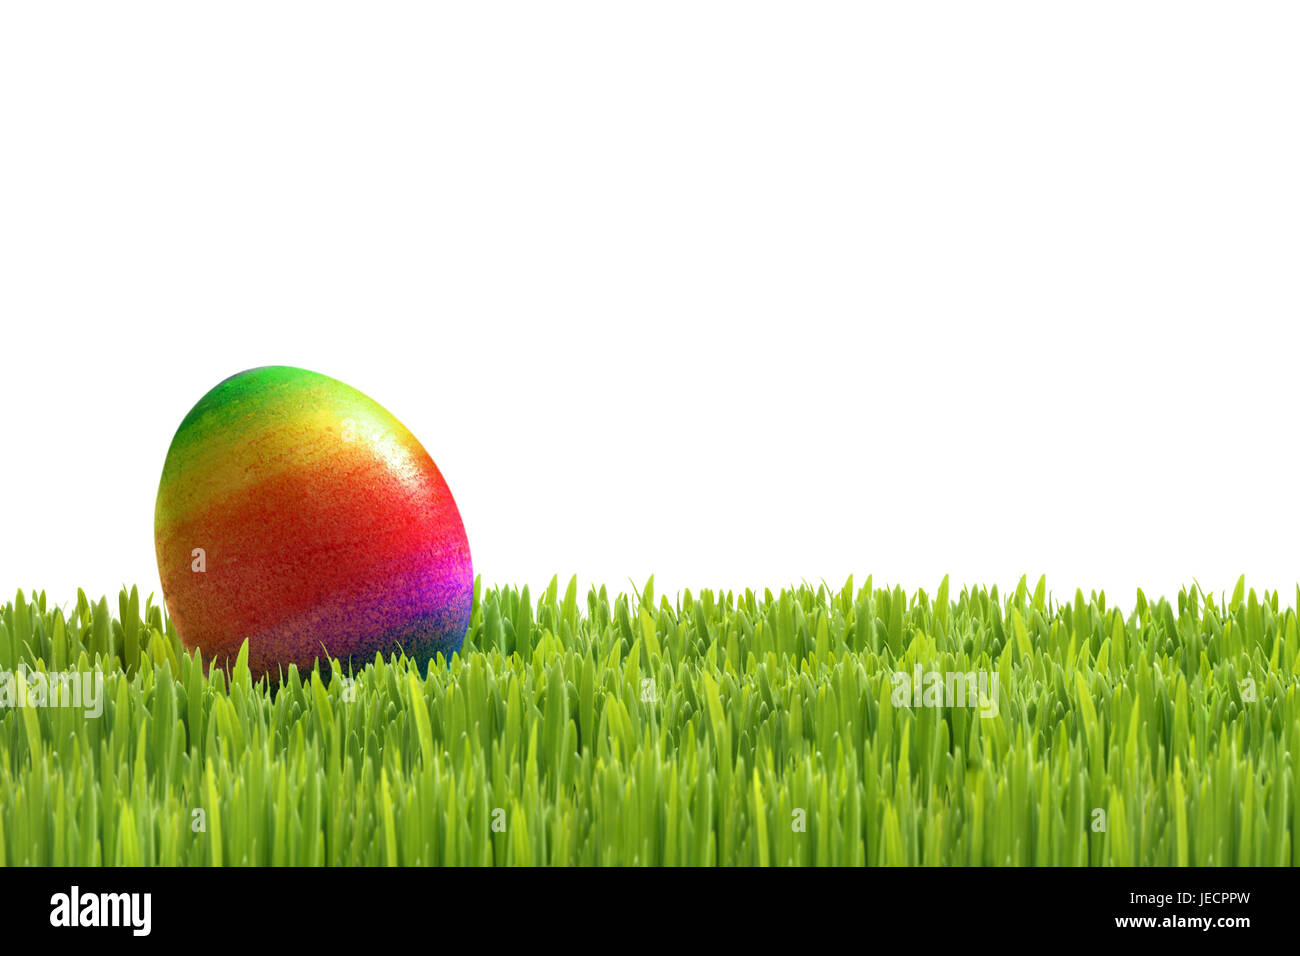 Easter, meadow, Easter egg, rainbow-coloured, egg search, [M], grass, culture, feast, Easter feast, Easter time, - Stock Image